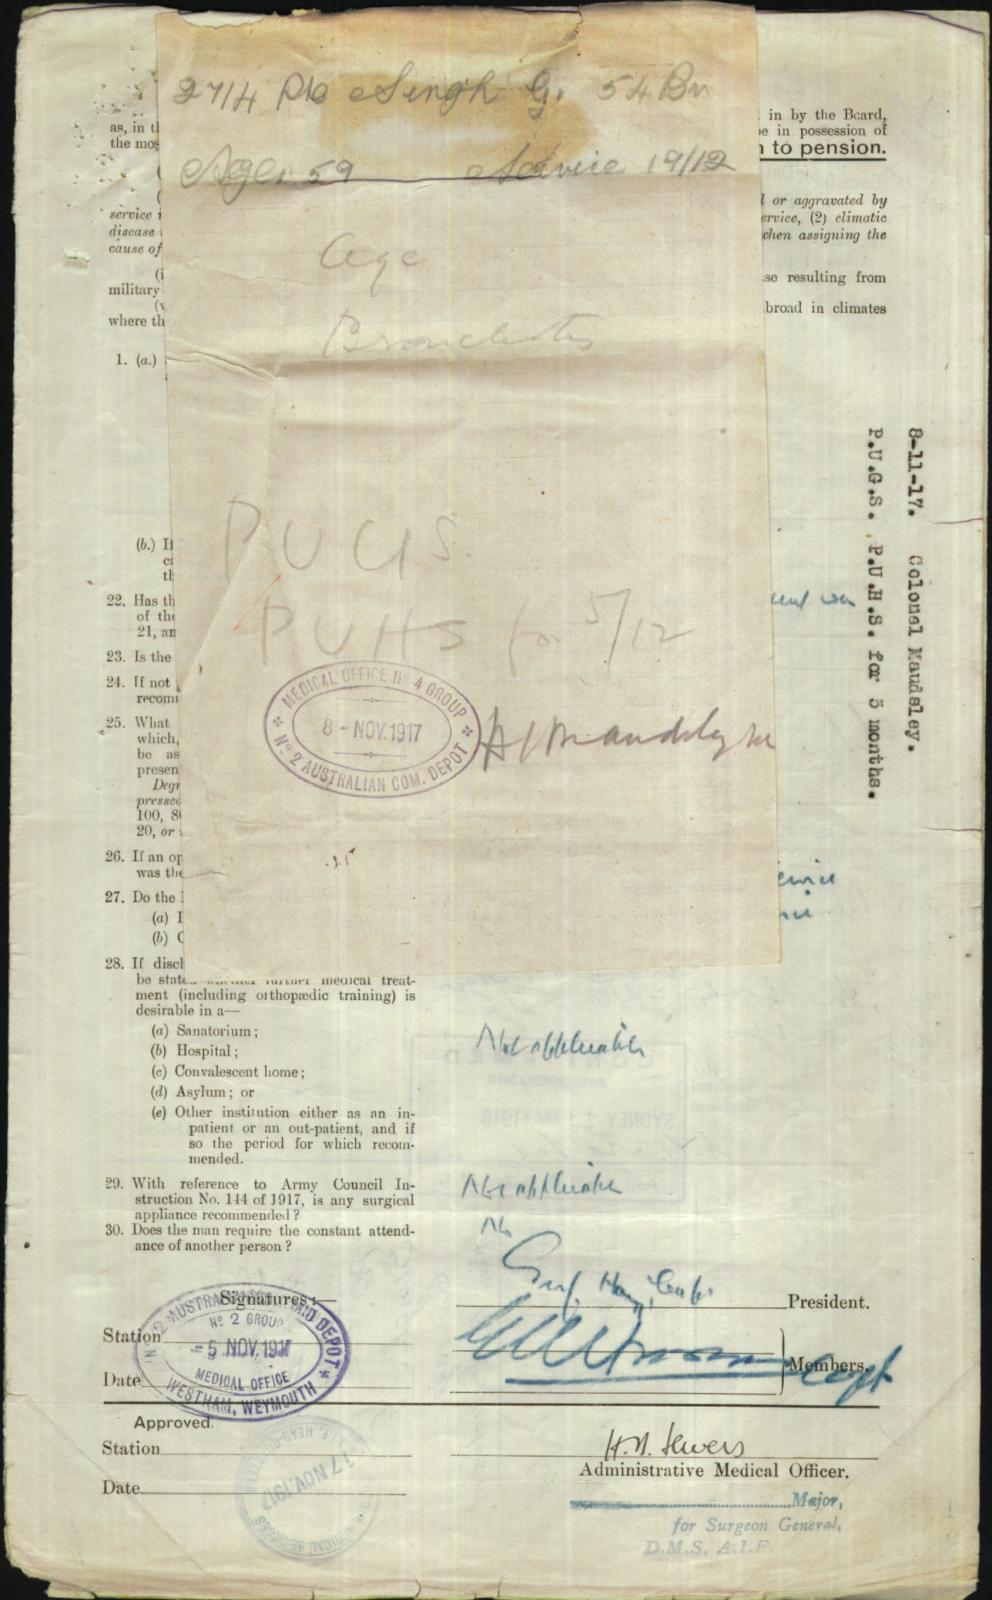 Enlistment form for WW1. Source: National Archives of Australia (NAA:B2455, Singh Gurbachan, 8085591) https://recordsearch.naa.gov.au/SearchNRetrieve/Interface/ViewImage.aspx?B=8085591